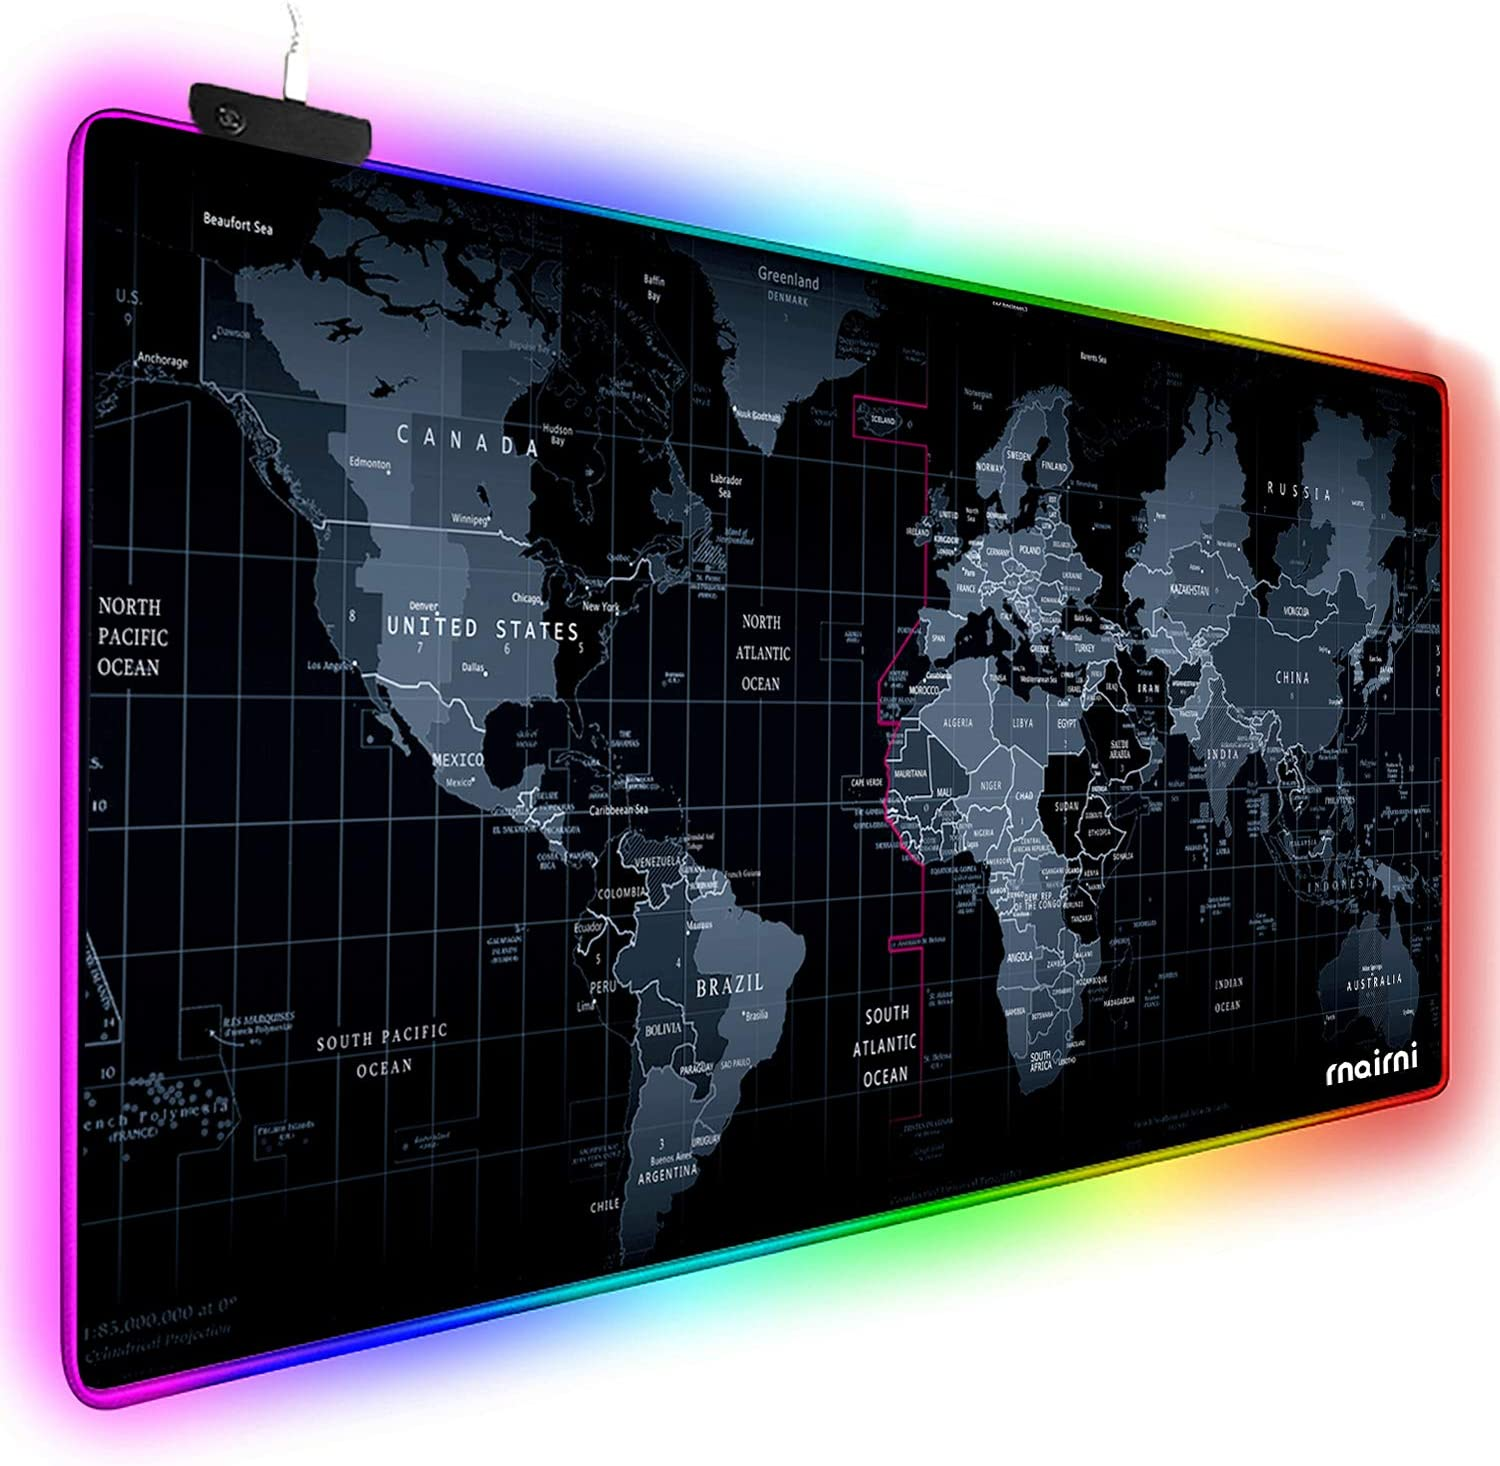 "Extended RGB Gaming Mouse Pad, Extra Large Gaming Mouse Mat for Gamer, Waterproof Office DEST Mat with 10 Lighting Mode, for PC Computer RGB Keyboard Mouse MacBook - 31.5'' x 15"" x 4mm(Map)"